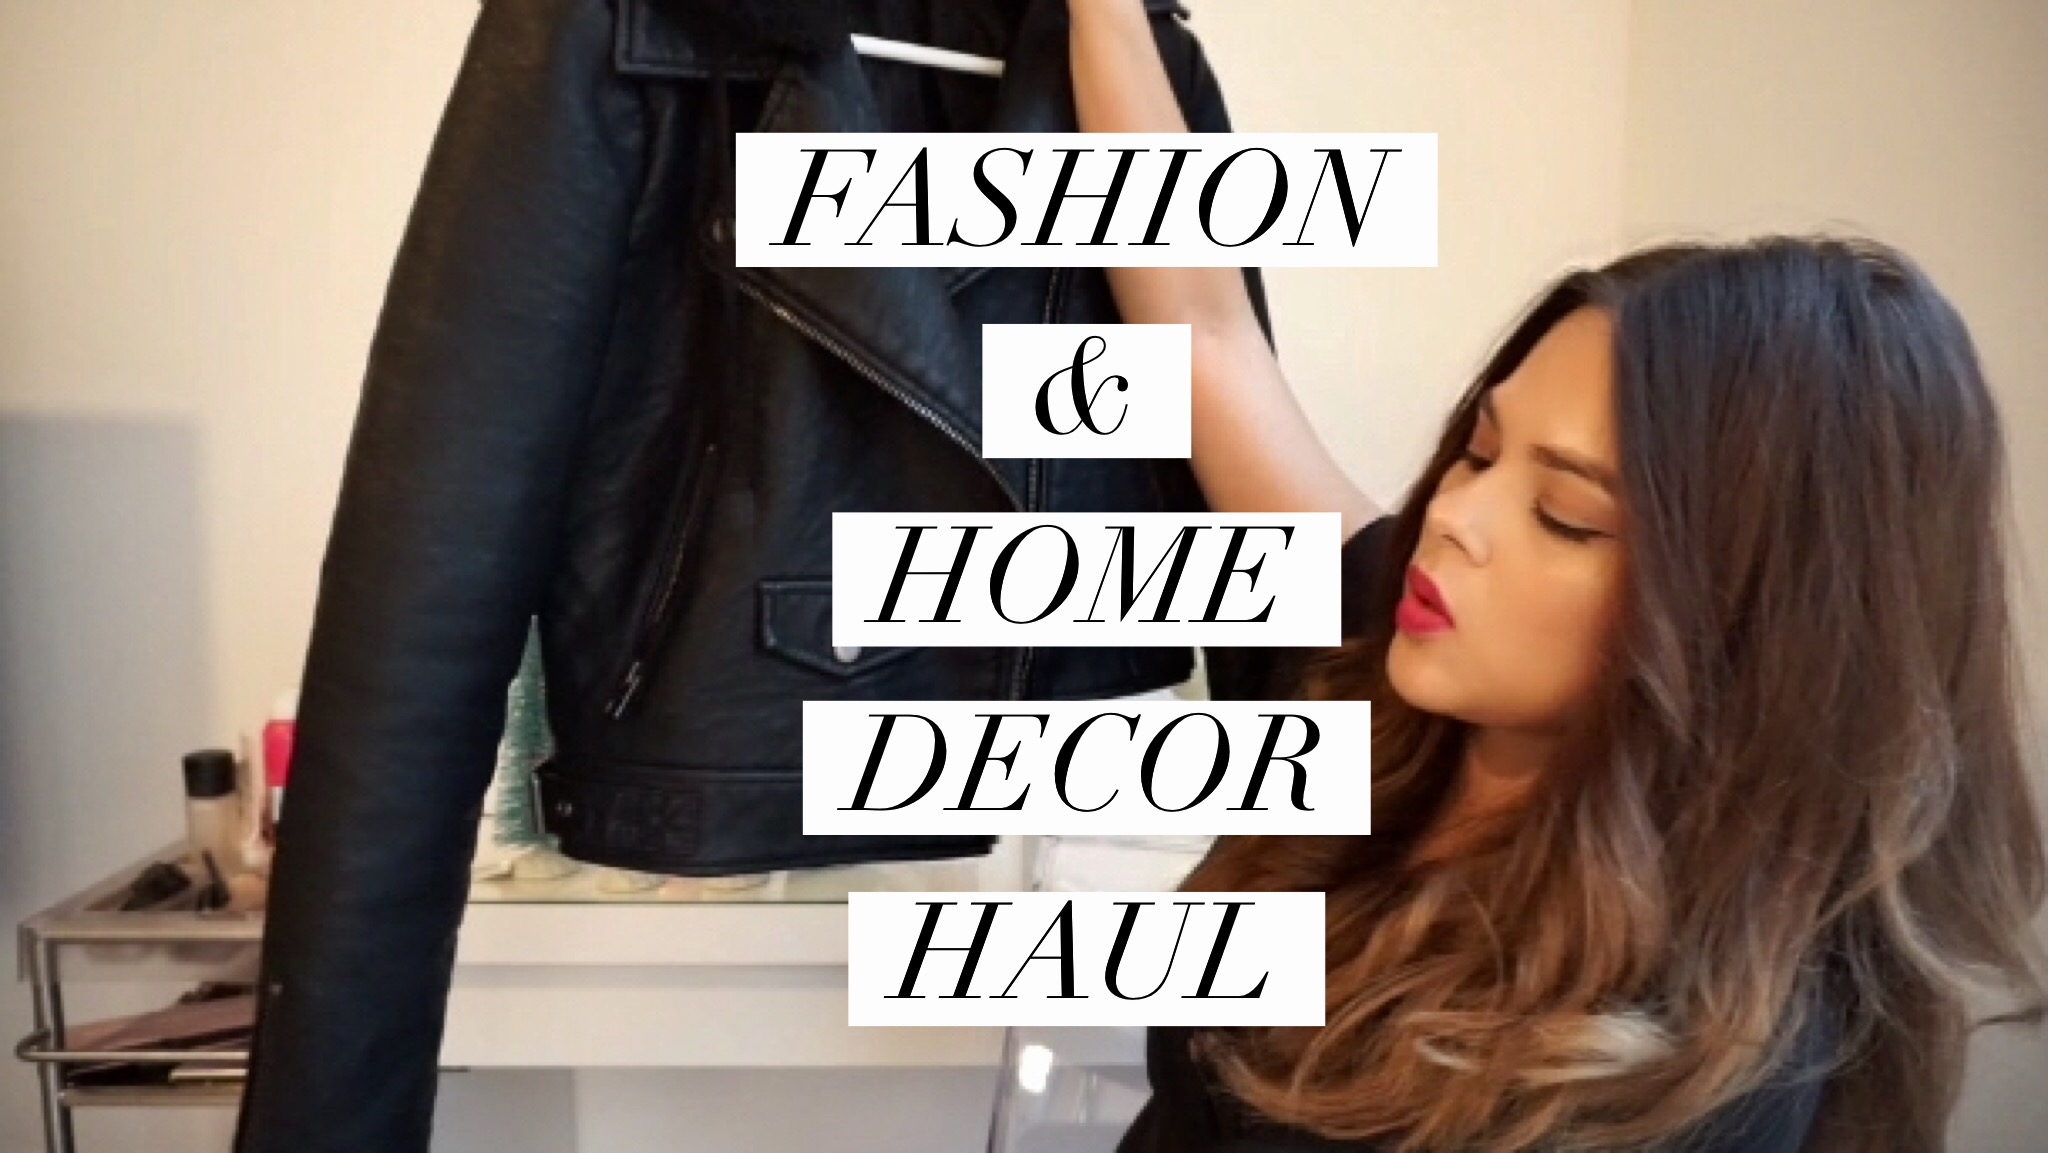 Fashion and Home Decor Haul